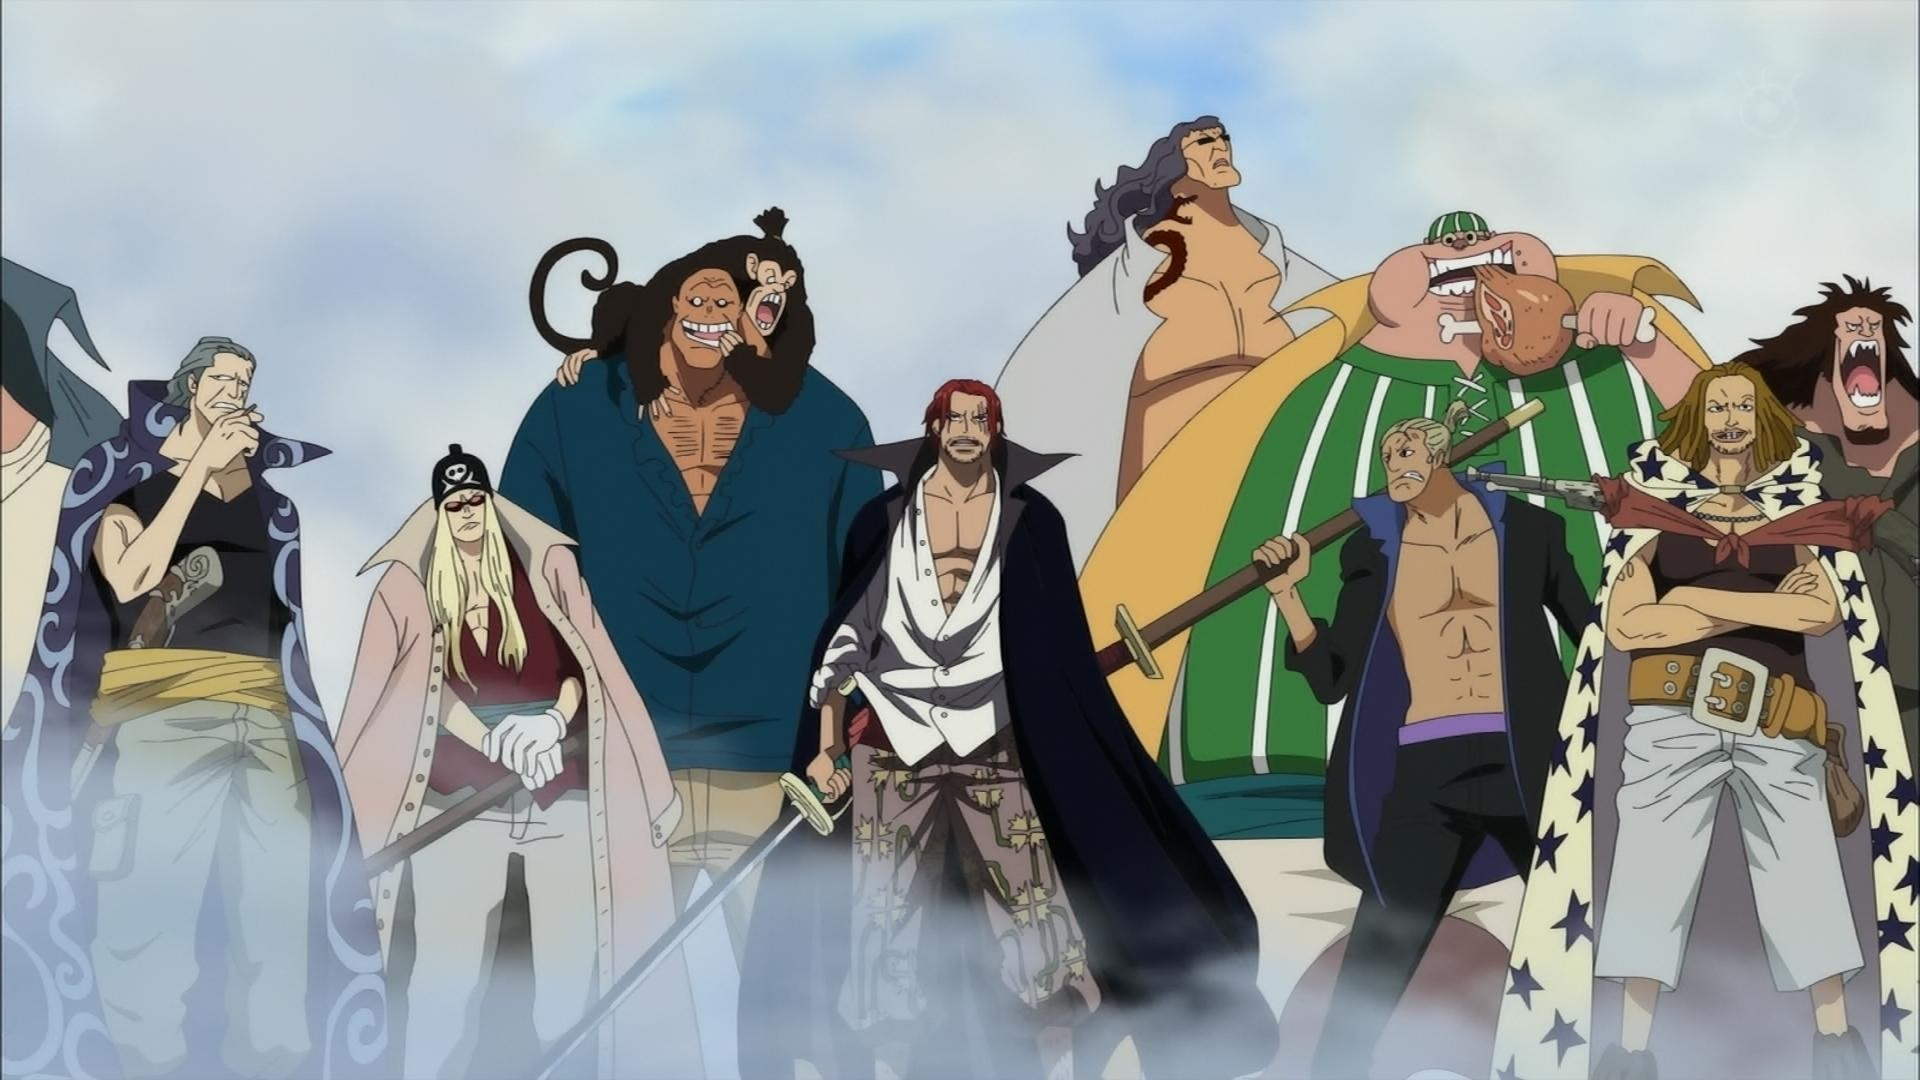 Download One Piece Shanks Wallpaper Gallery